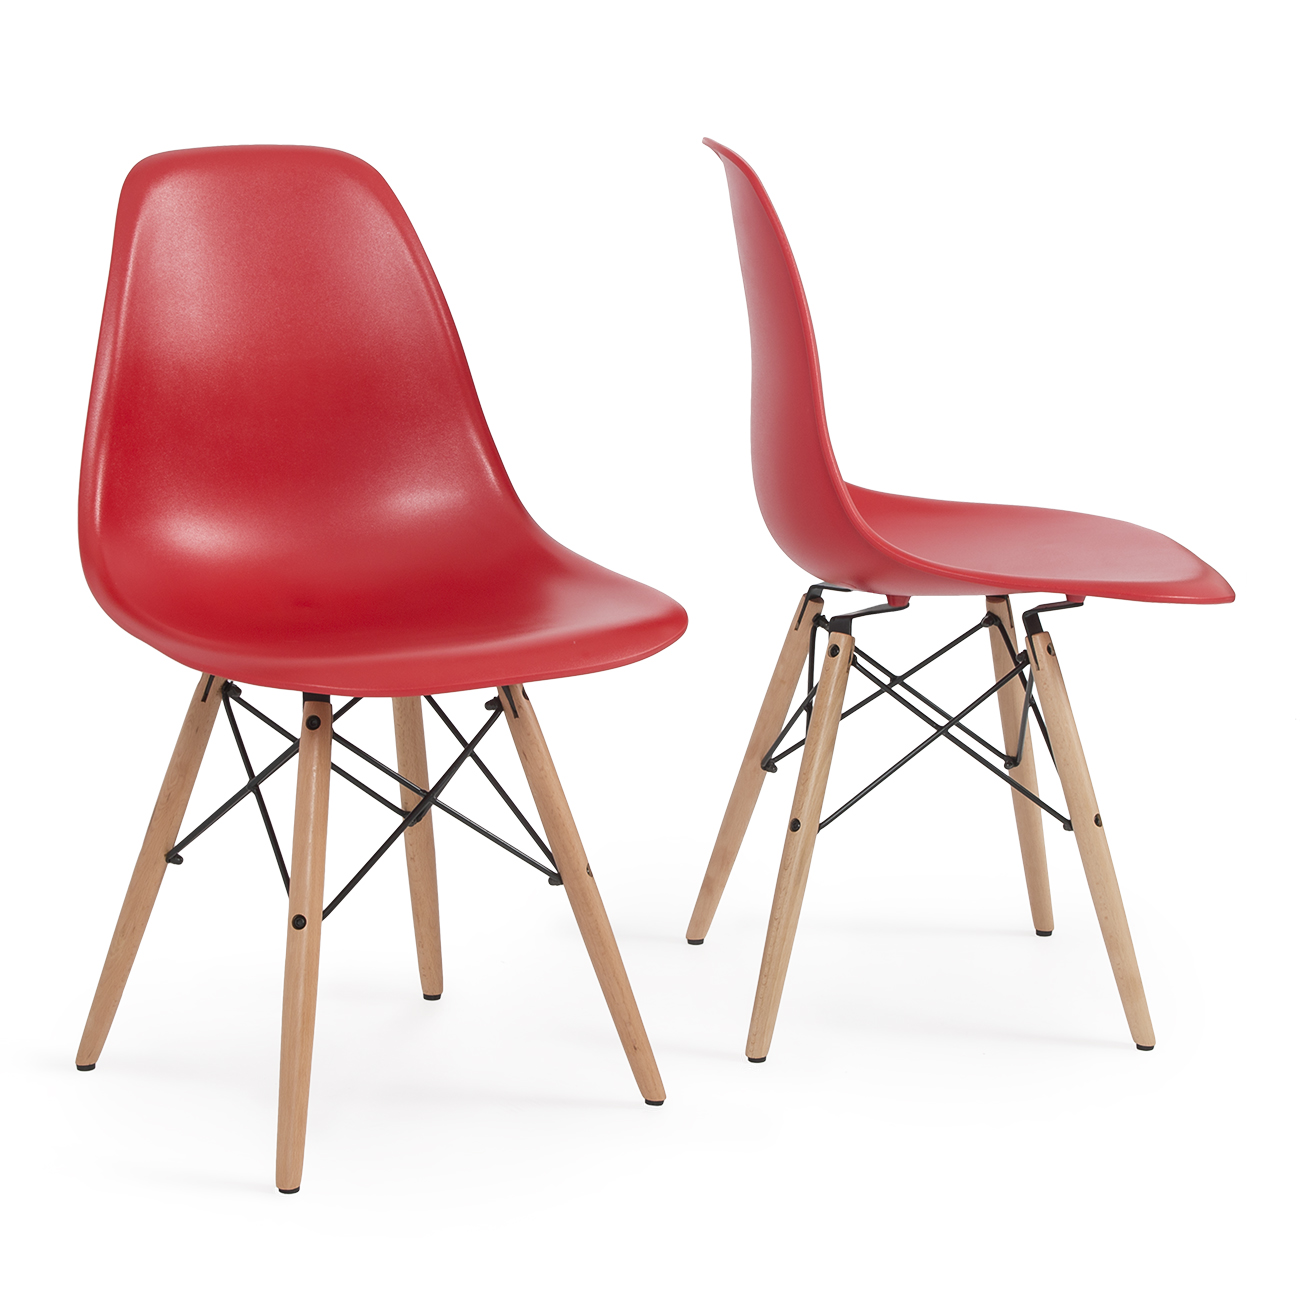 Midcentury Modern Dining Chairs: Style DSW Wood Base Mid Century Modern Shell Dining Side